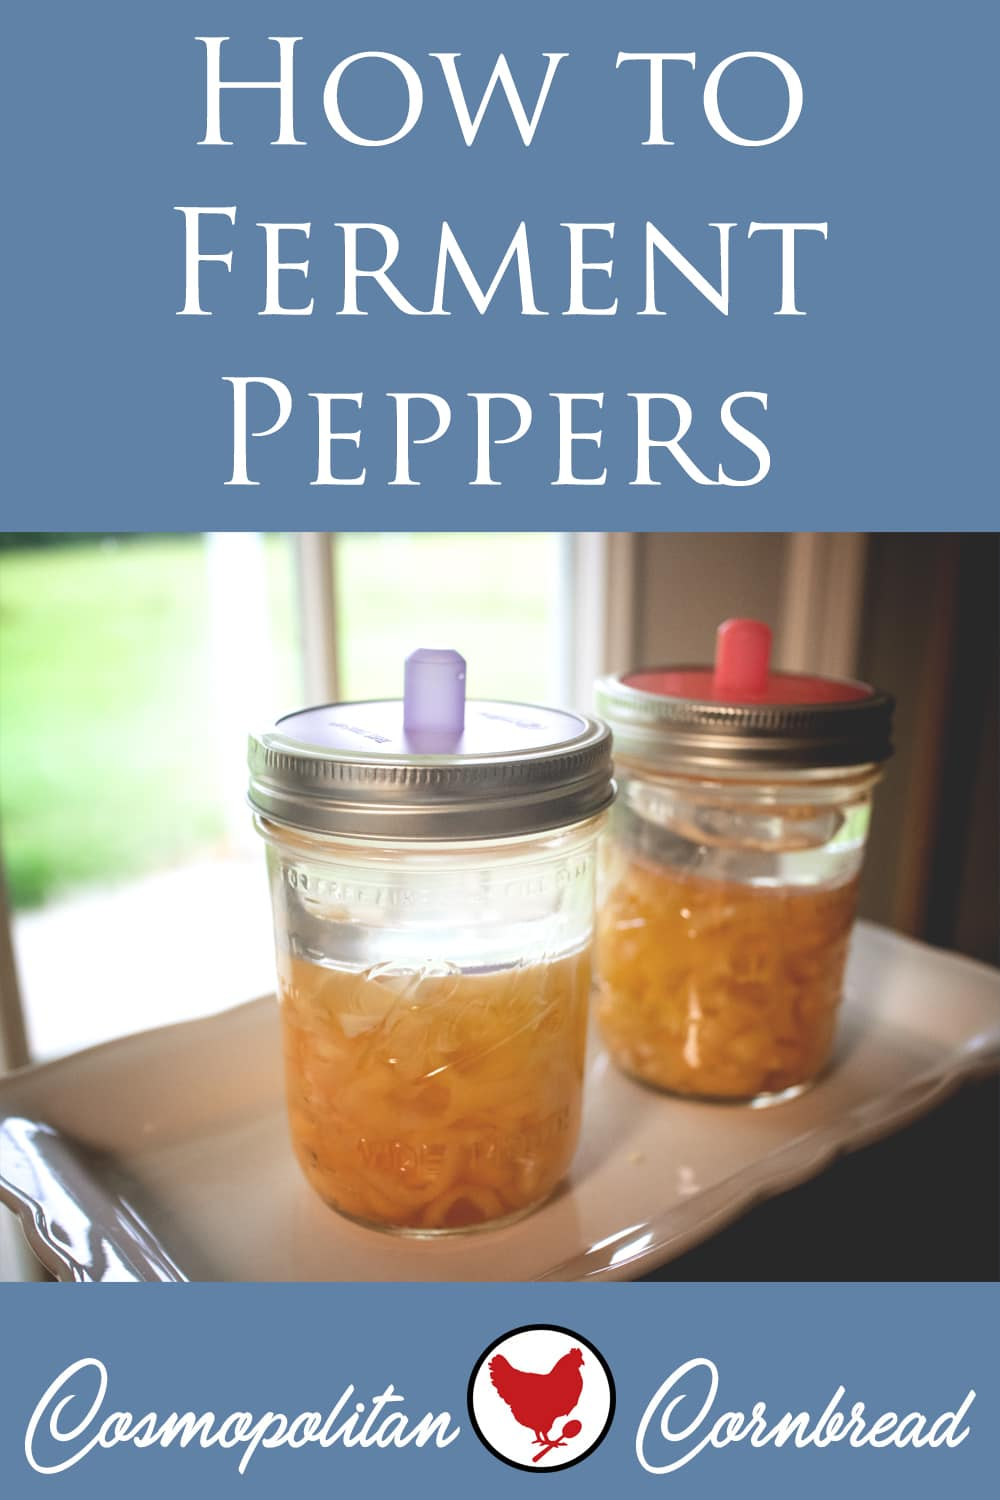 Fermenting foods is a great (and healthy) way to use some of the garden bounty. Learn how to do a simple pepper fermentation.